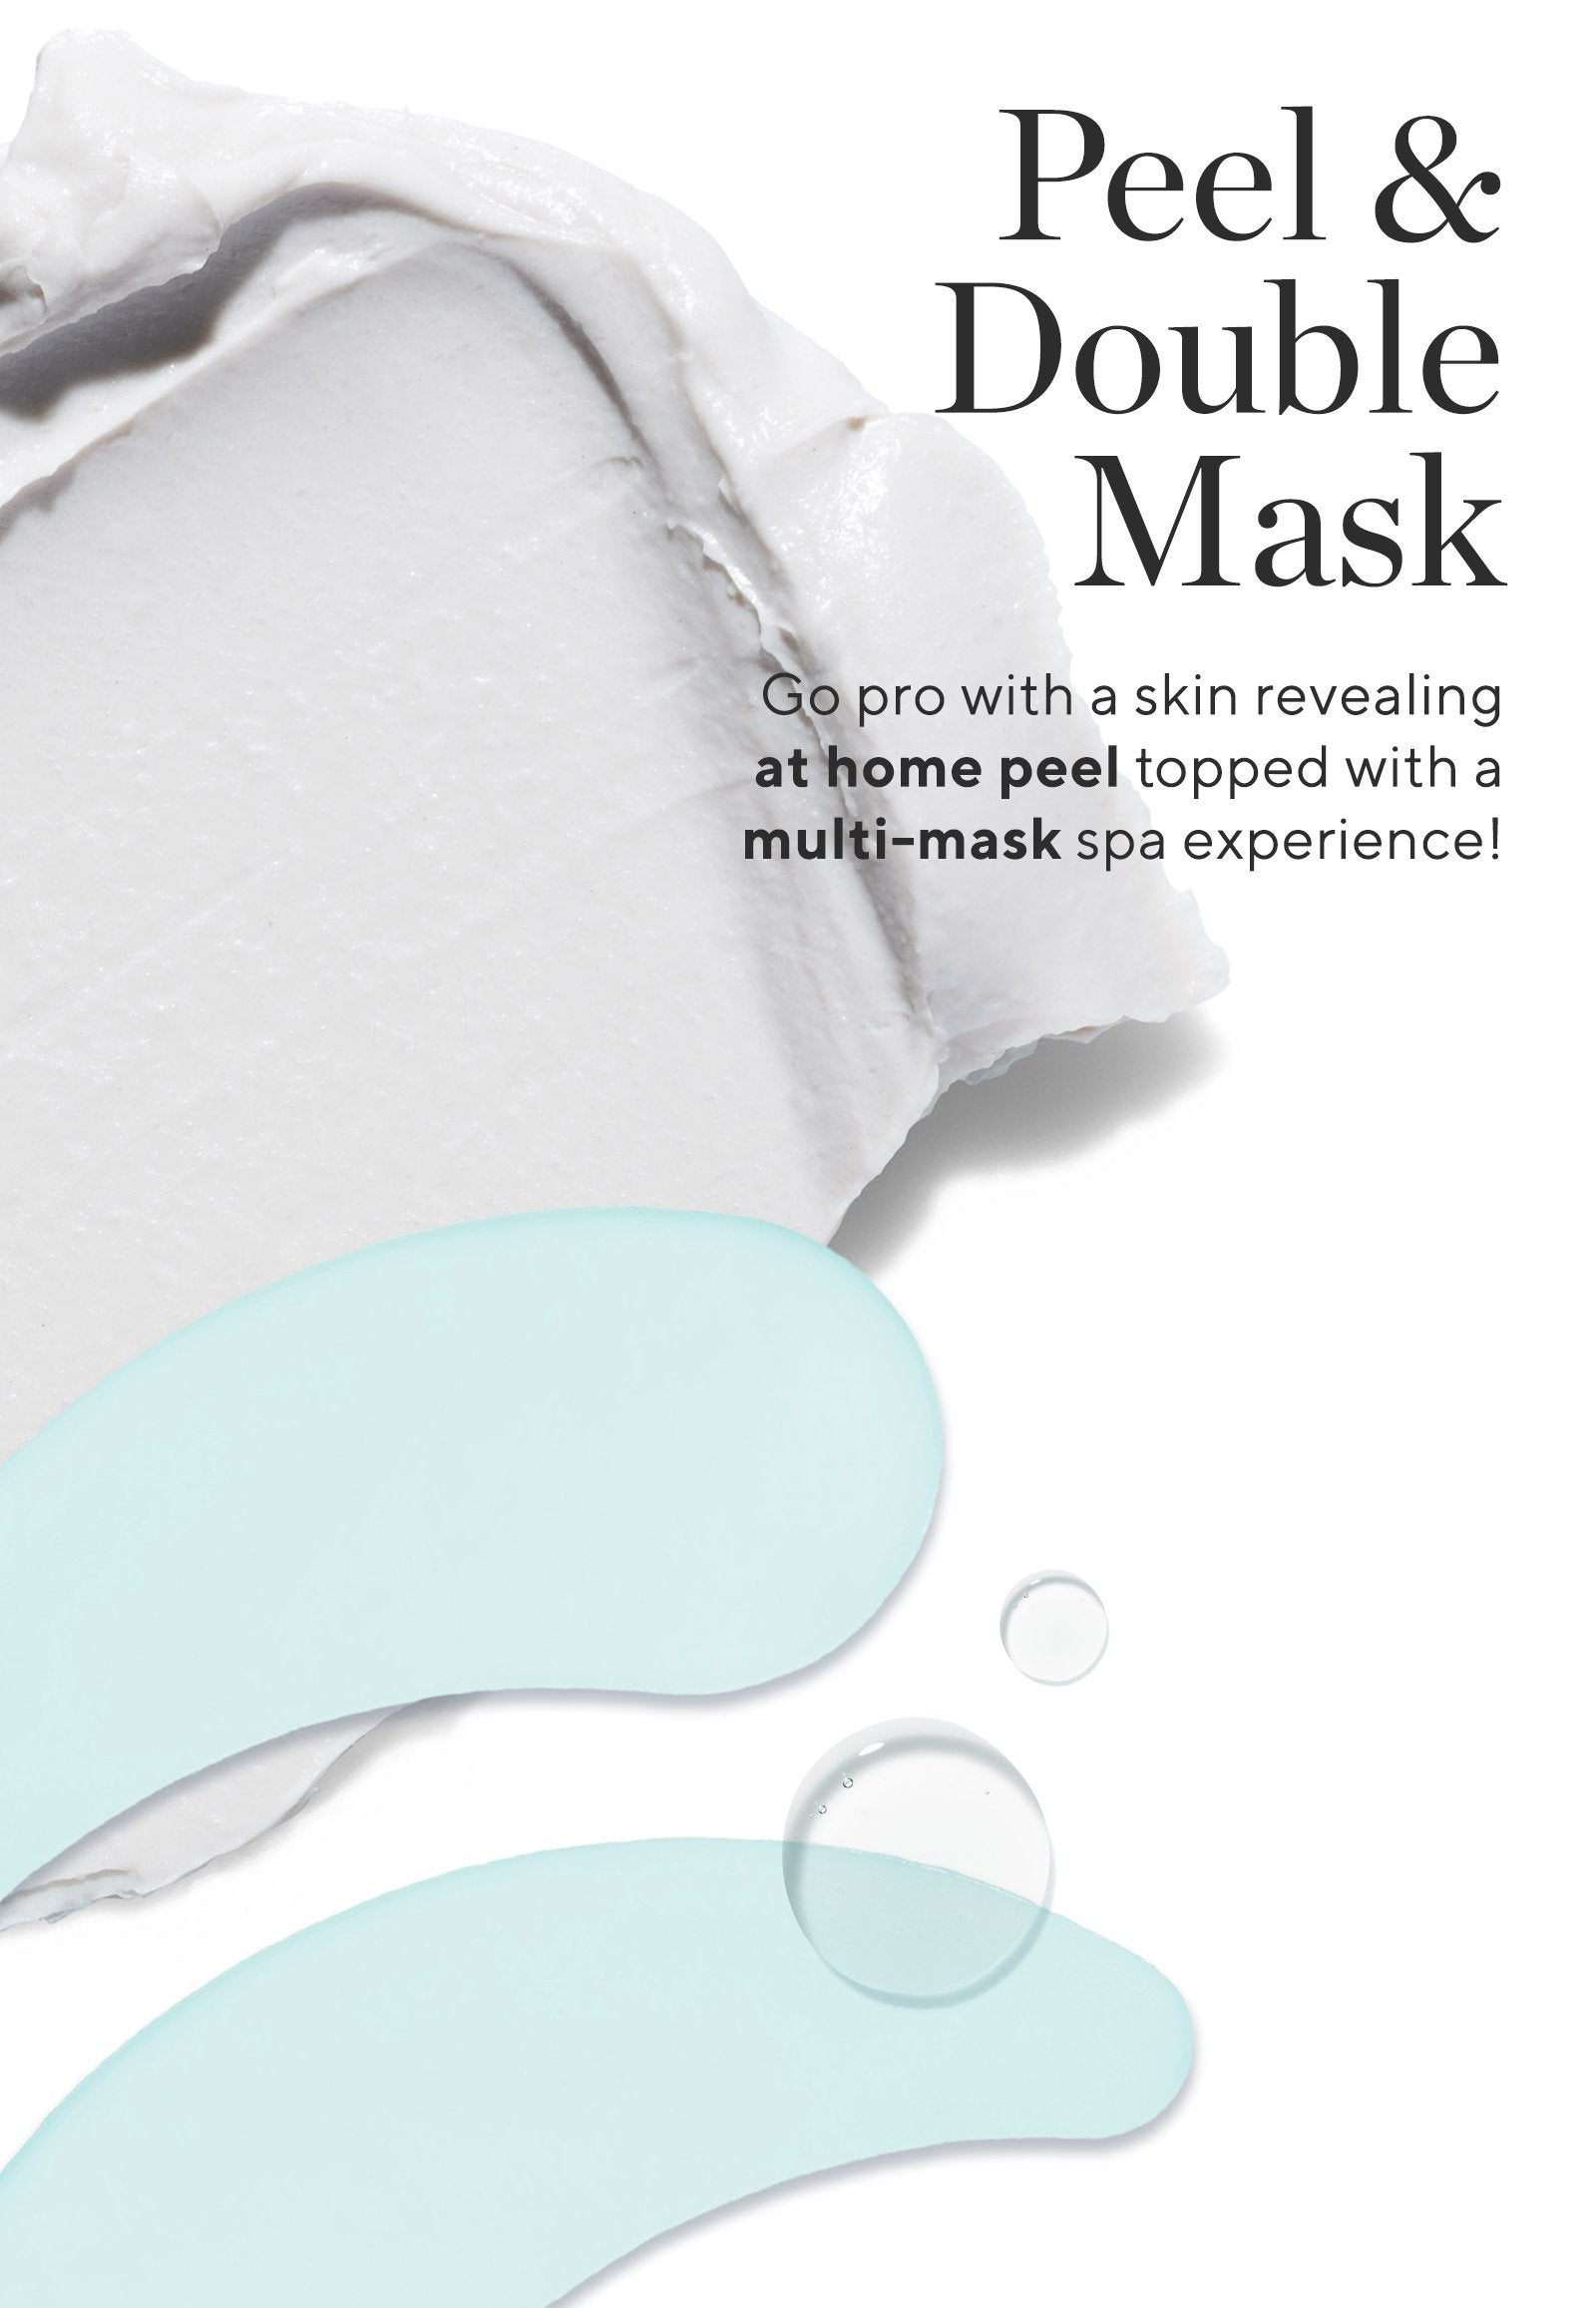 Wrinkle Warrior Facial - HydroPeptide